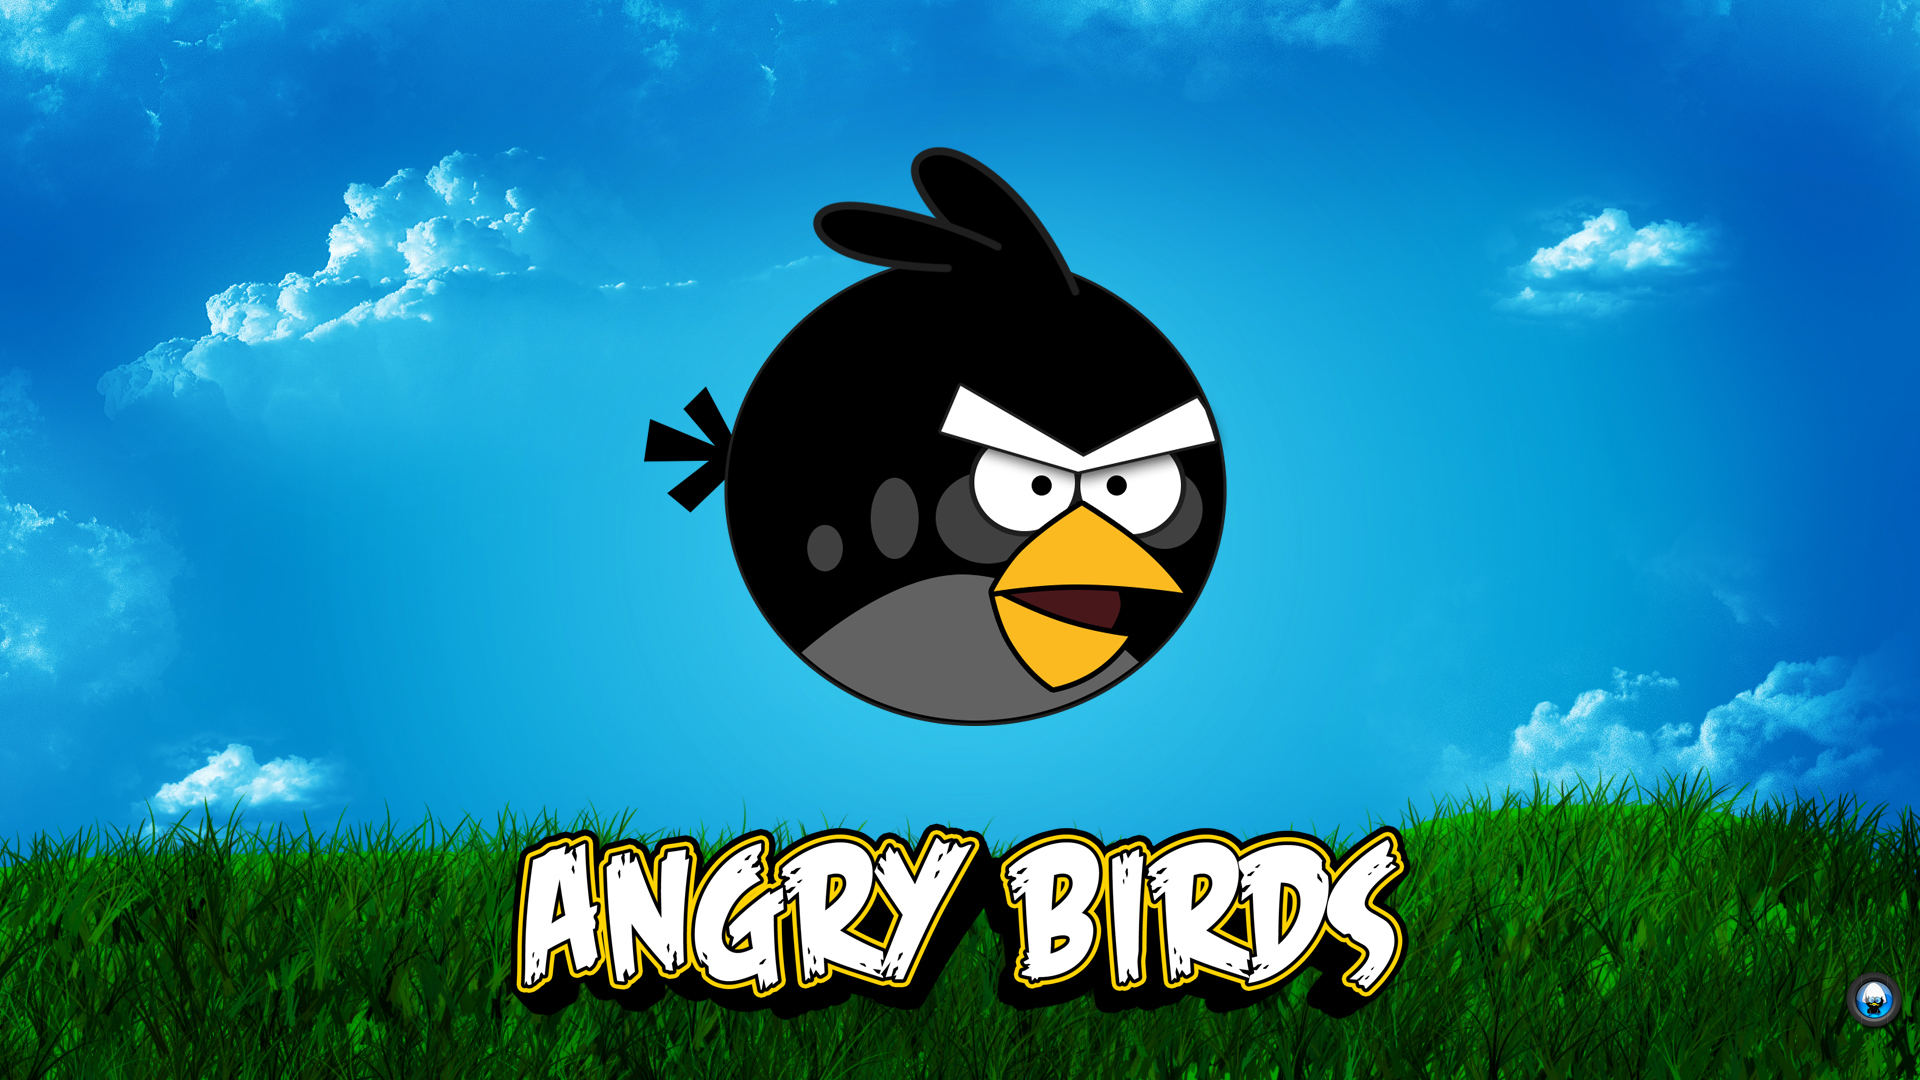 angry bird wallpaper screensaver #7545 wallpaper | walldiskpaper